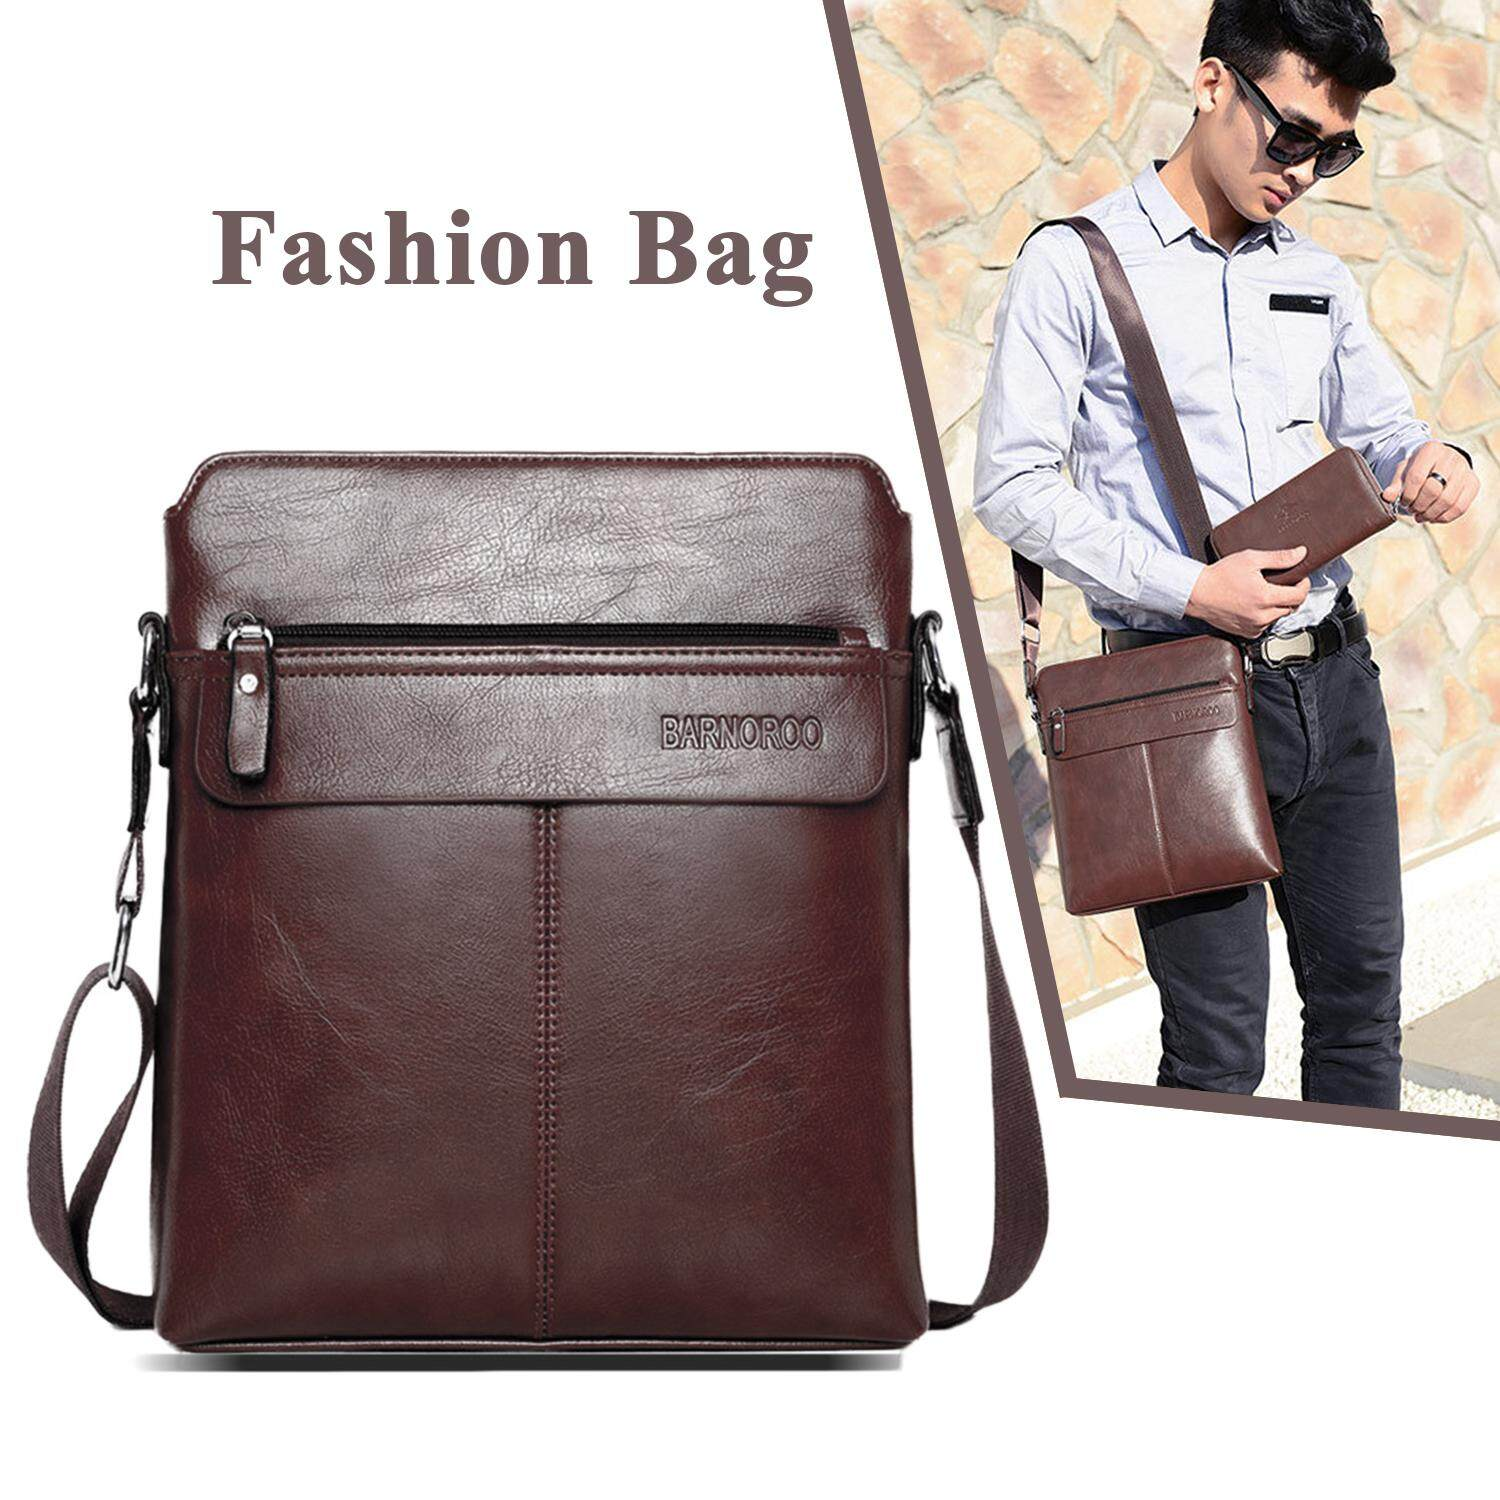 5a4395162fa7 iFlashDeal Sling Bag Men Messenger Bags PU Leather Crossbody Shoulder Pouch  Bags Business Bags Men Fashion